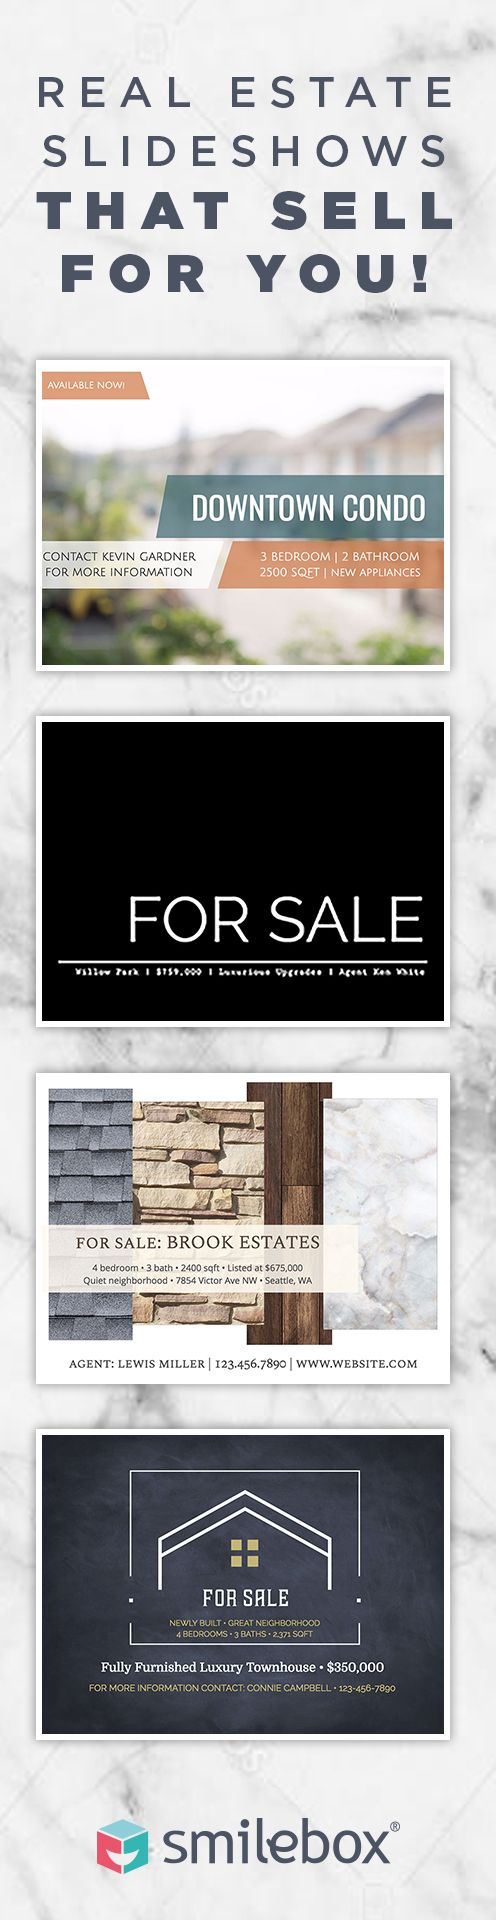 Create Stunning Real Estate Slideshows and Increase Your Reach to Clients!smilebox